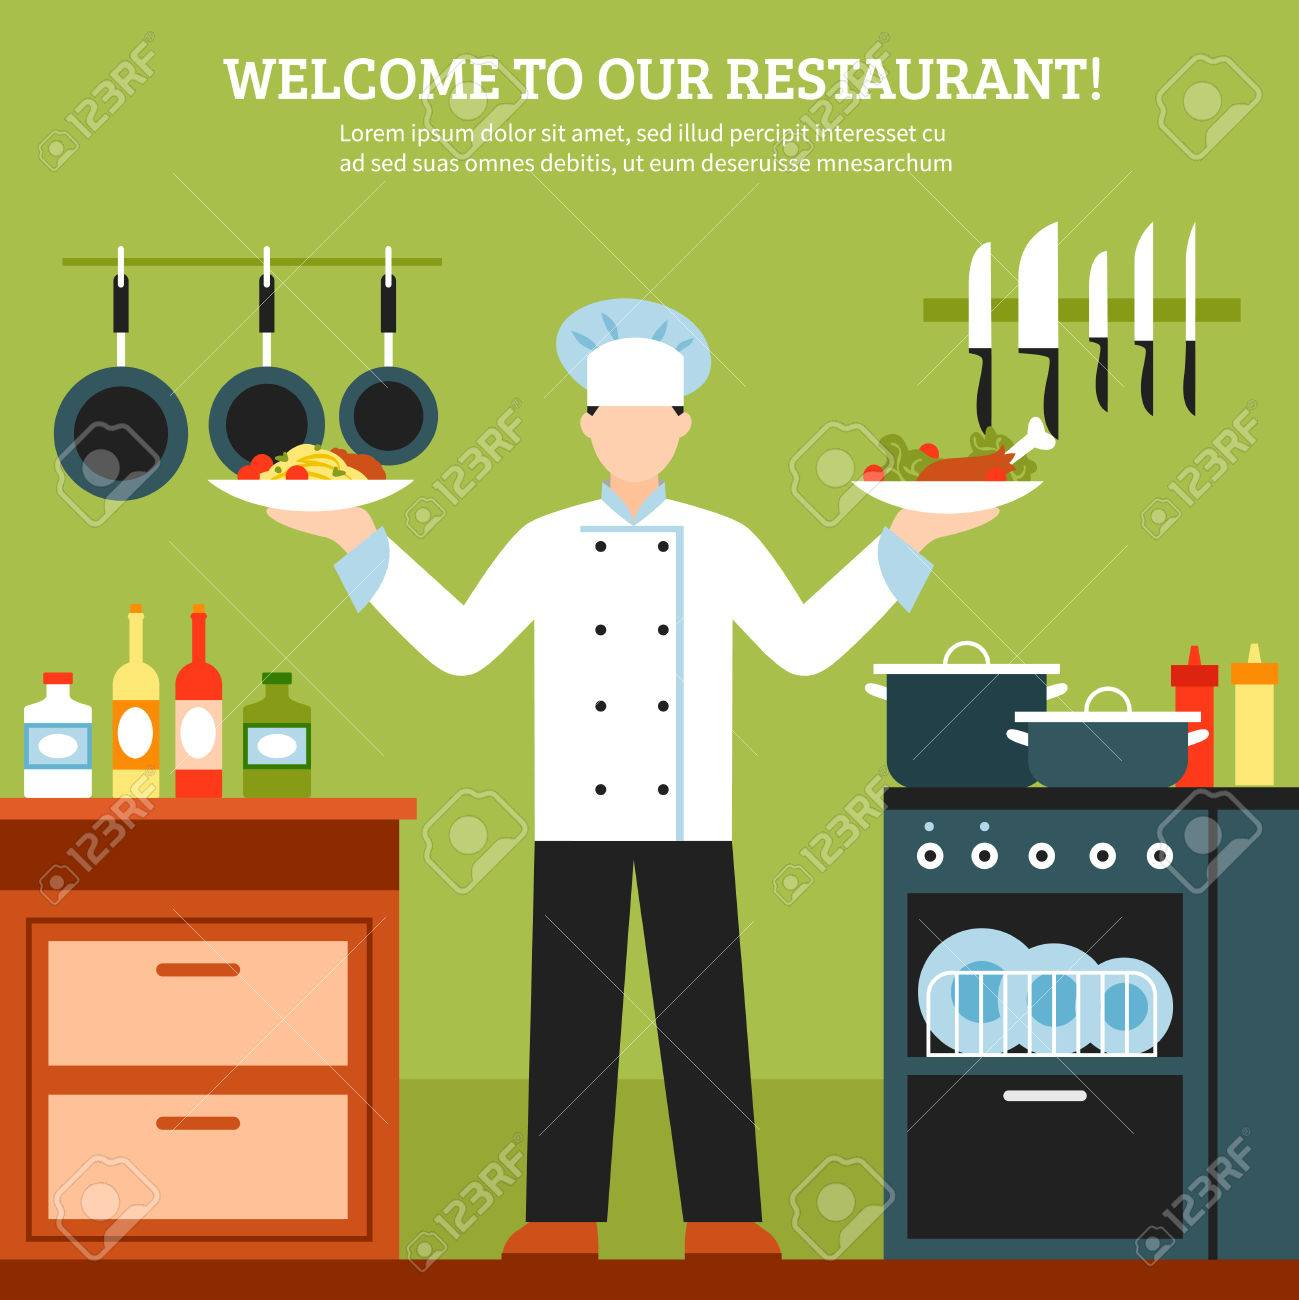 Restaurant Kitchen Illustration professional cooking design composition with chef in restaurant